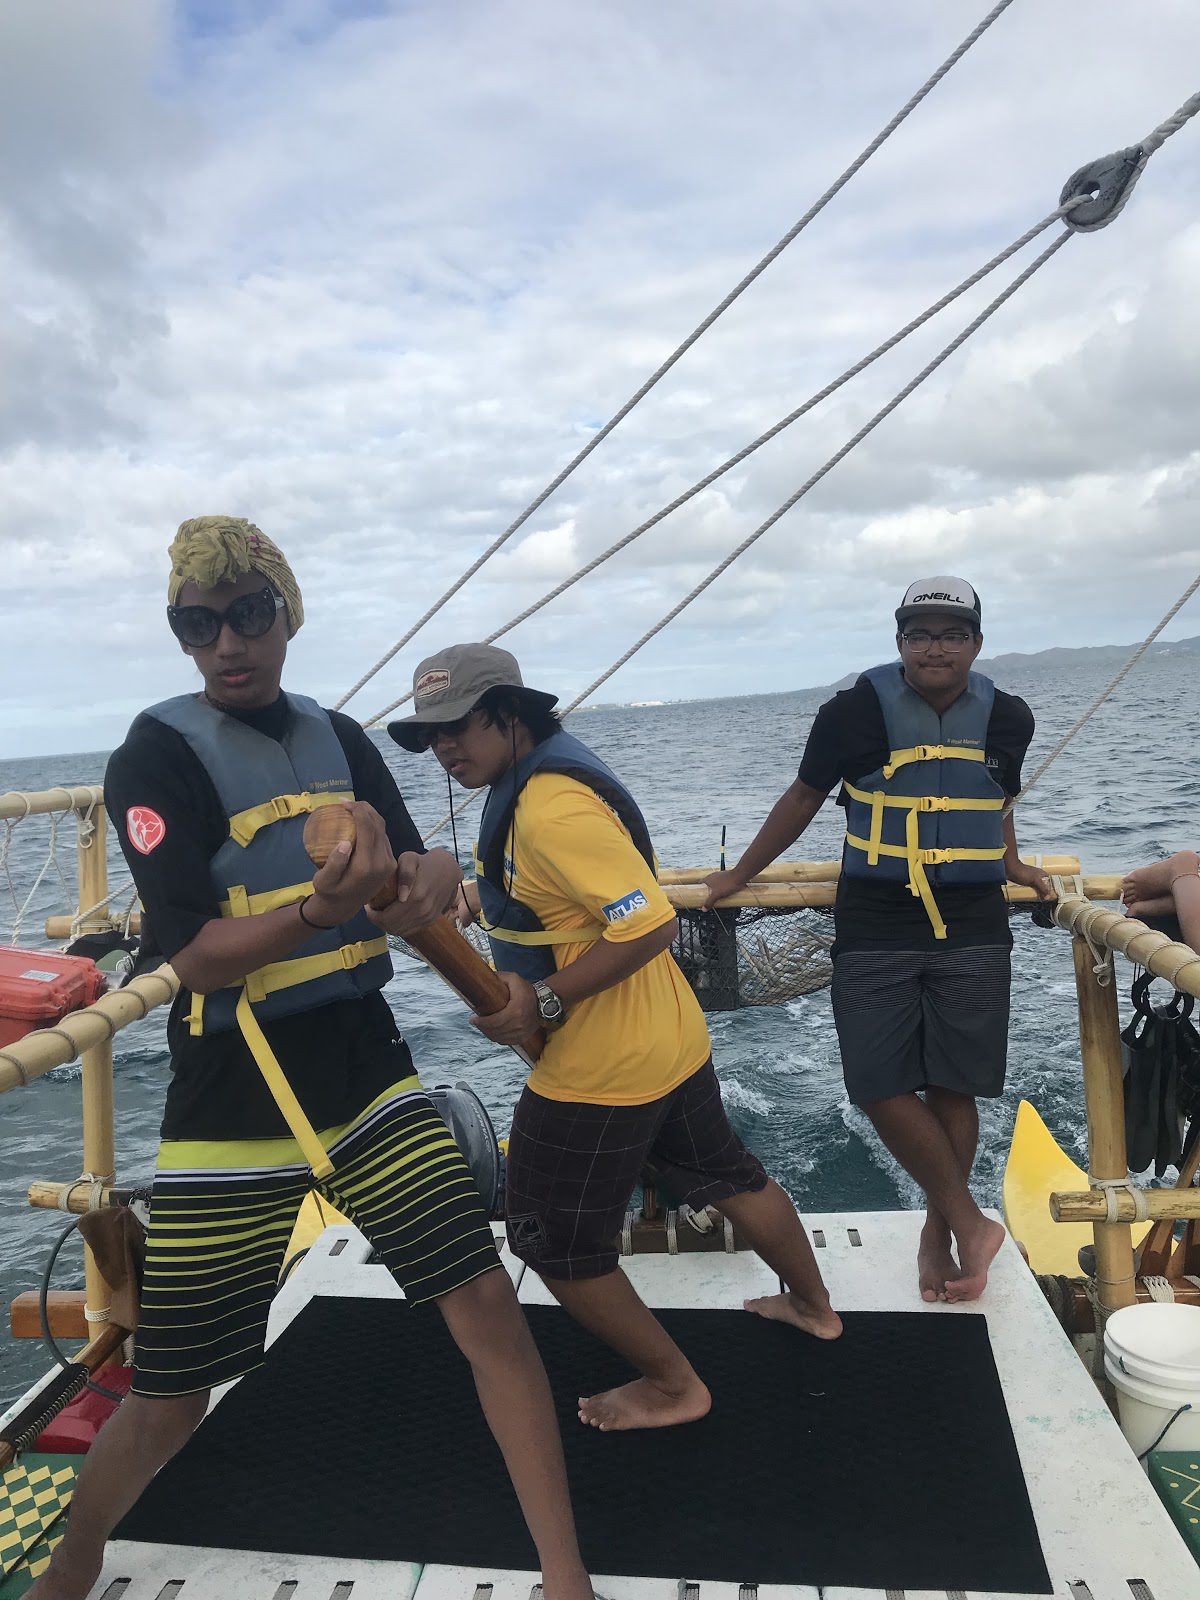 students on a sailing ship working the rudder on the ocean